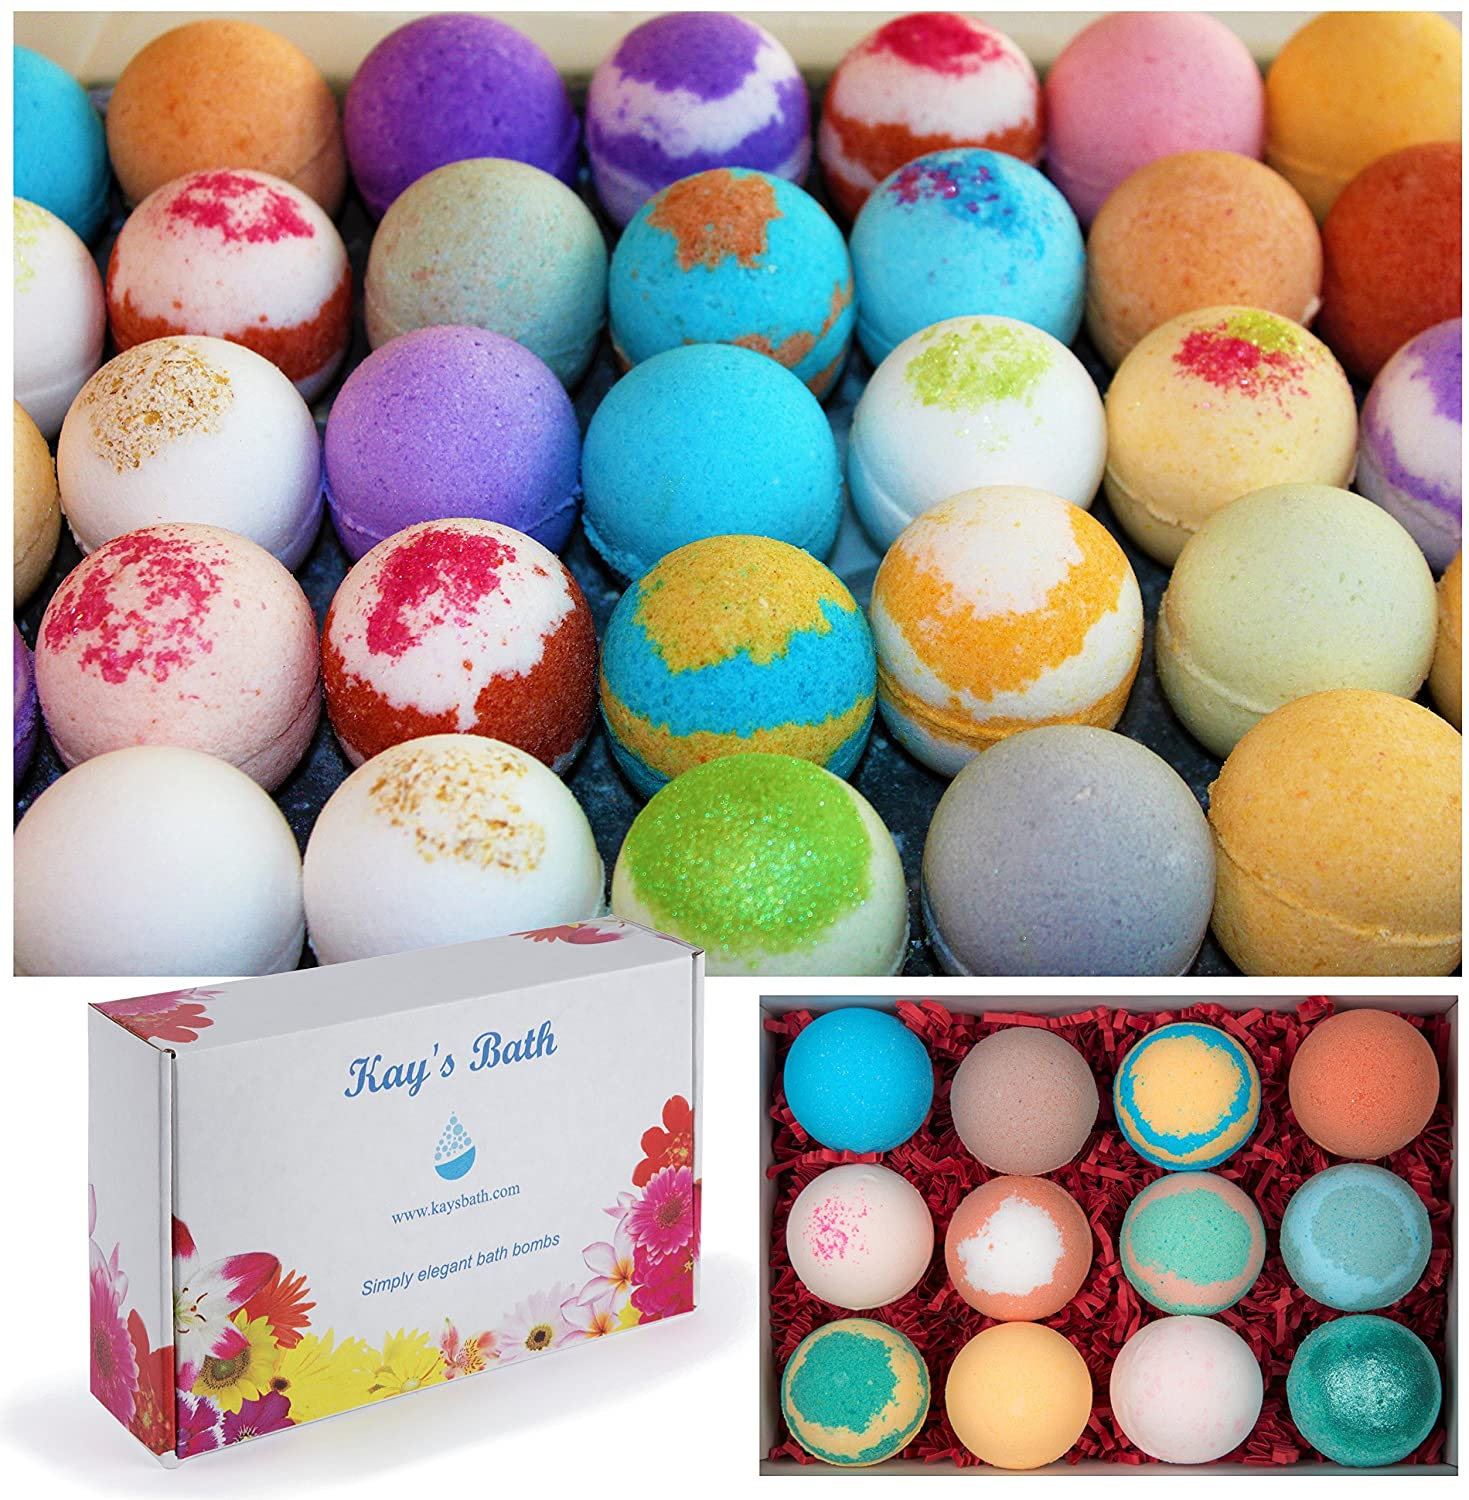 Kay's Bath Bombs Gift Set Fizzies - 12 Pack - Individually Wrapped Assorted Scents - Made in USA - Shea & Mango Butter, Essential and Fragrance Oils for Moisturizing Dry Skin - Lush Bath Salts Kay's Bath